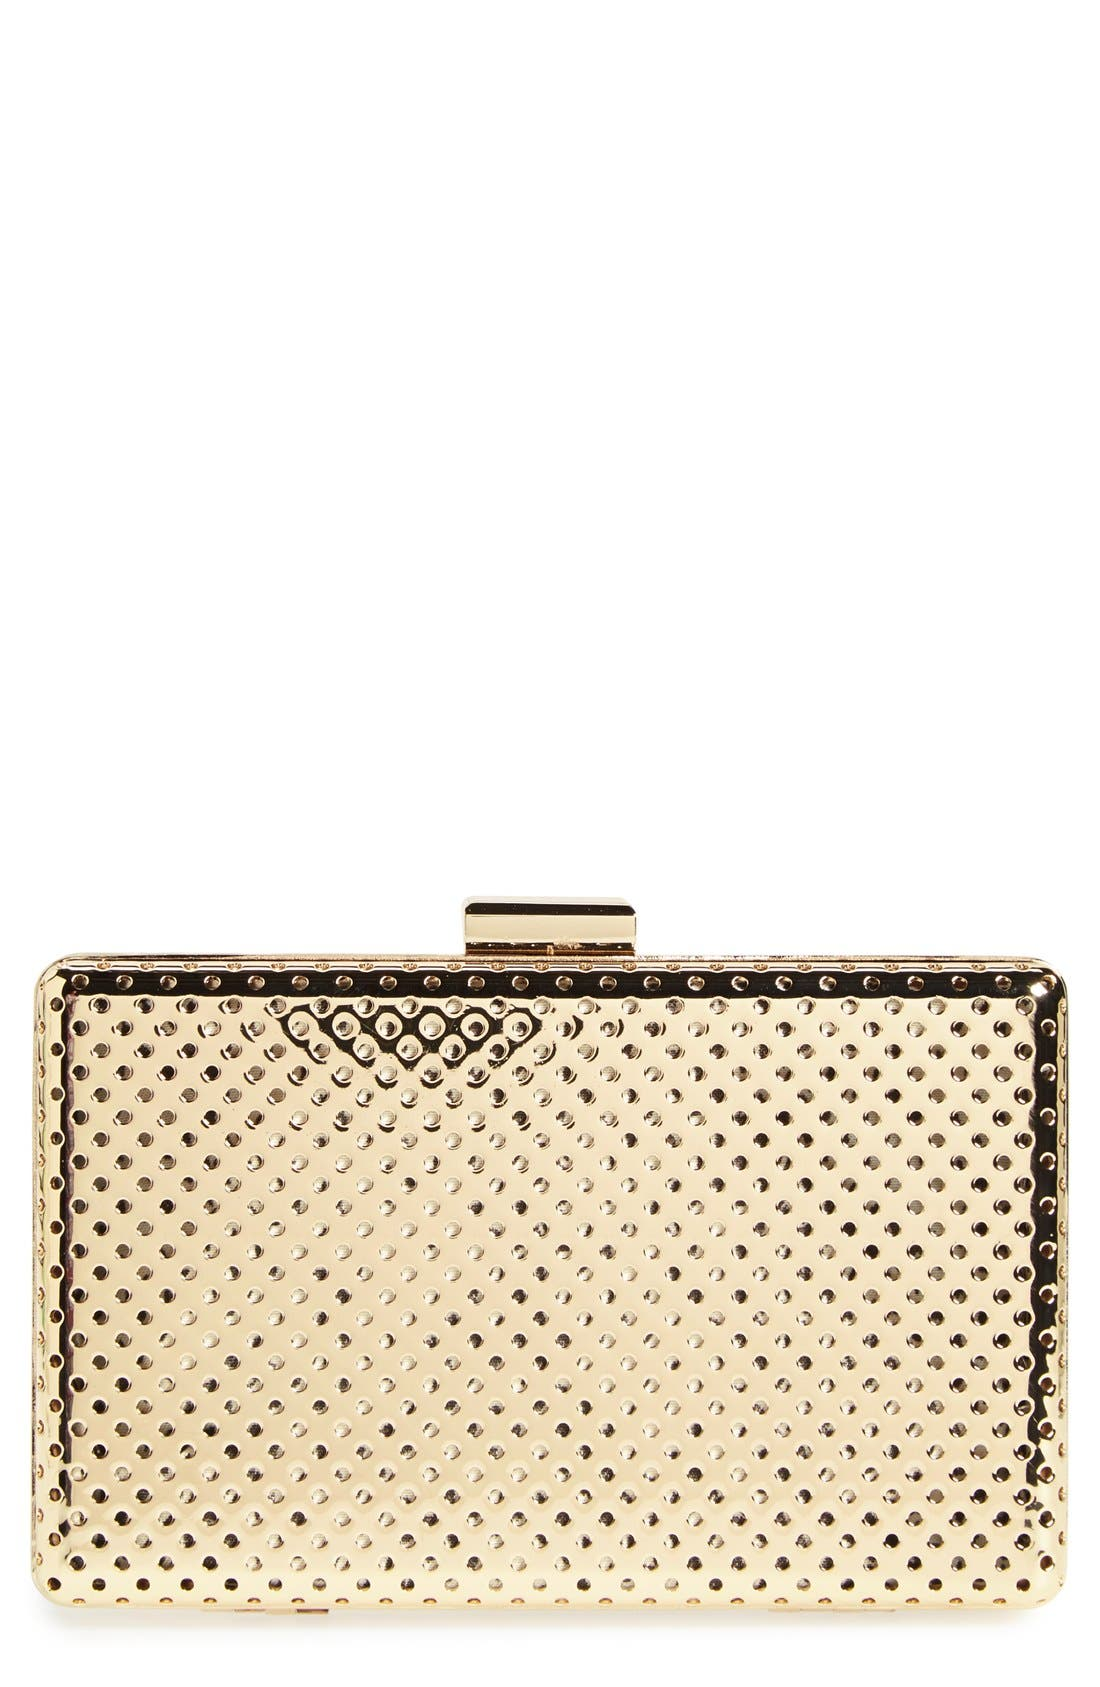 Main Image - Sole Society 'Raquelle' Perforated Metal Box Clutch